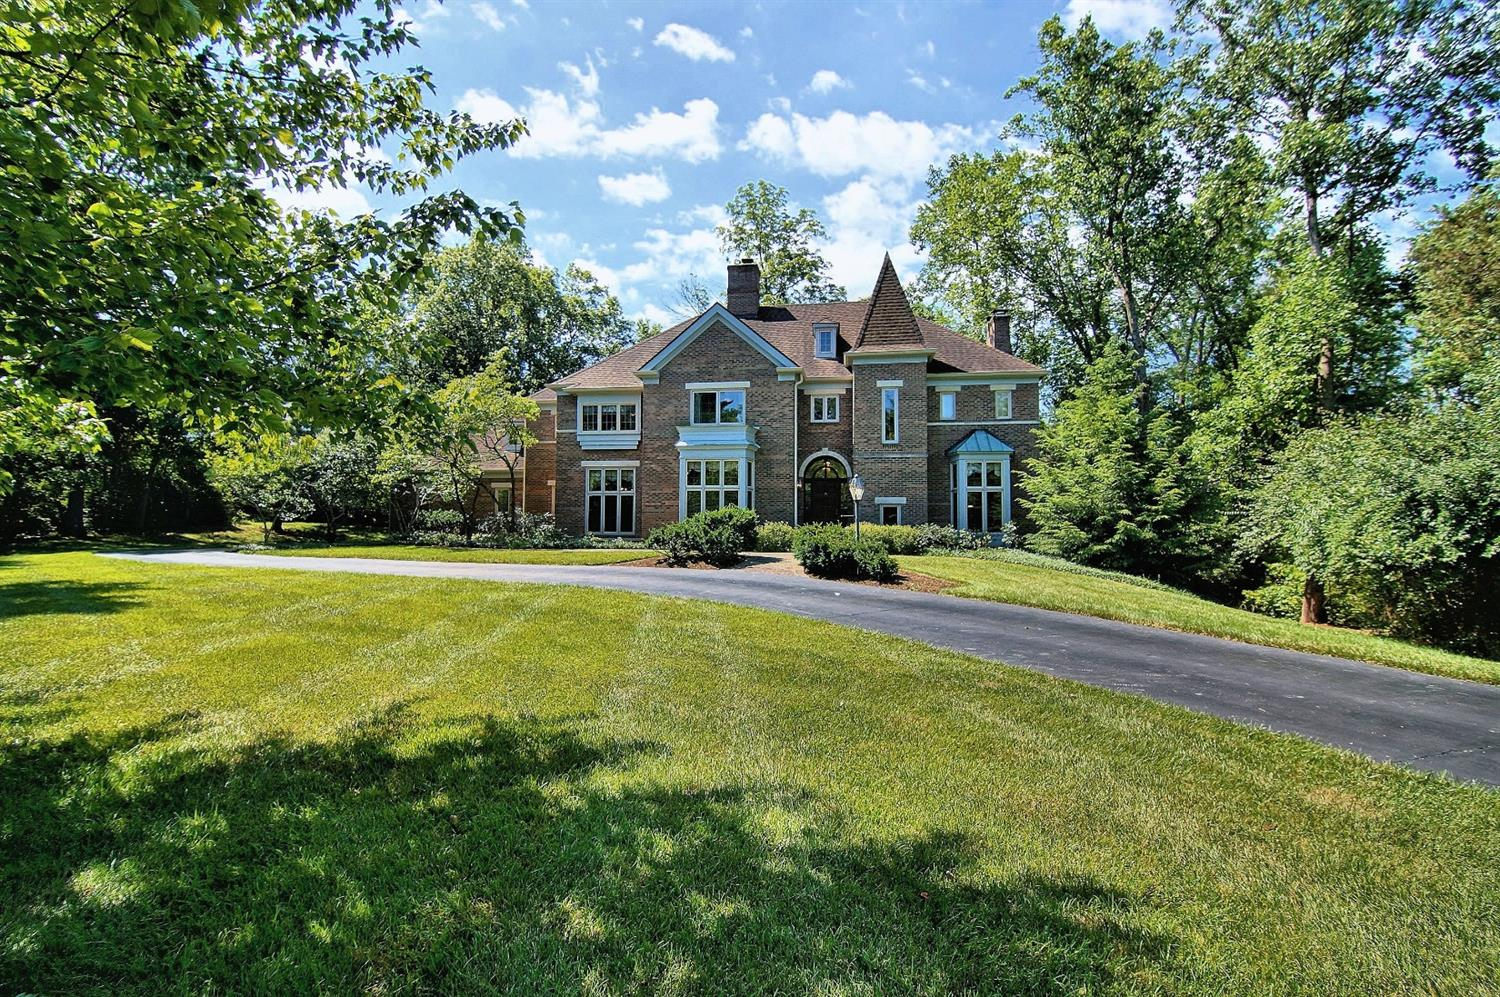 Majestic Chateau style home in sought after Coldstream neighborhood. Superior finishes. Custom construction. Unique design. Amazing curb appeal. Multiple indoor/outdoor entertainment areas! Close to parks,entertainment,restaurants,shopping & highways. Serene Private 1 acre lot. Forest Hills Schools.